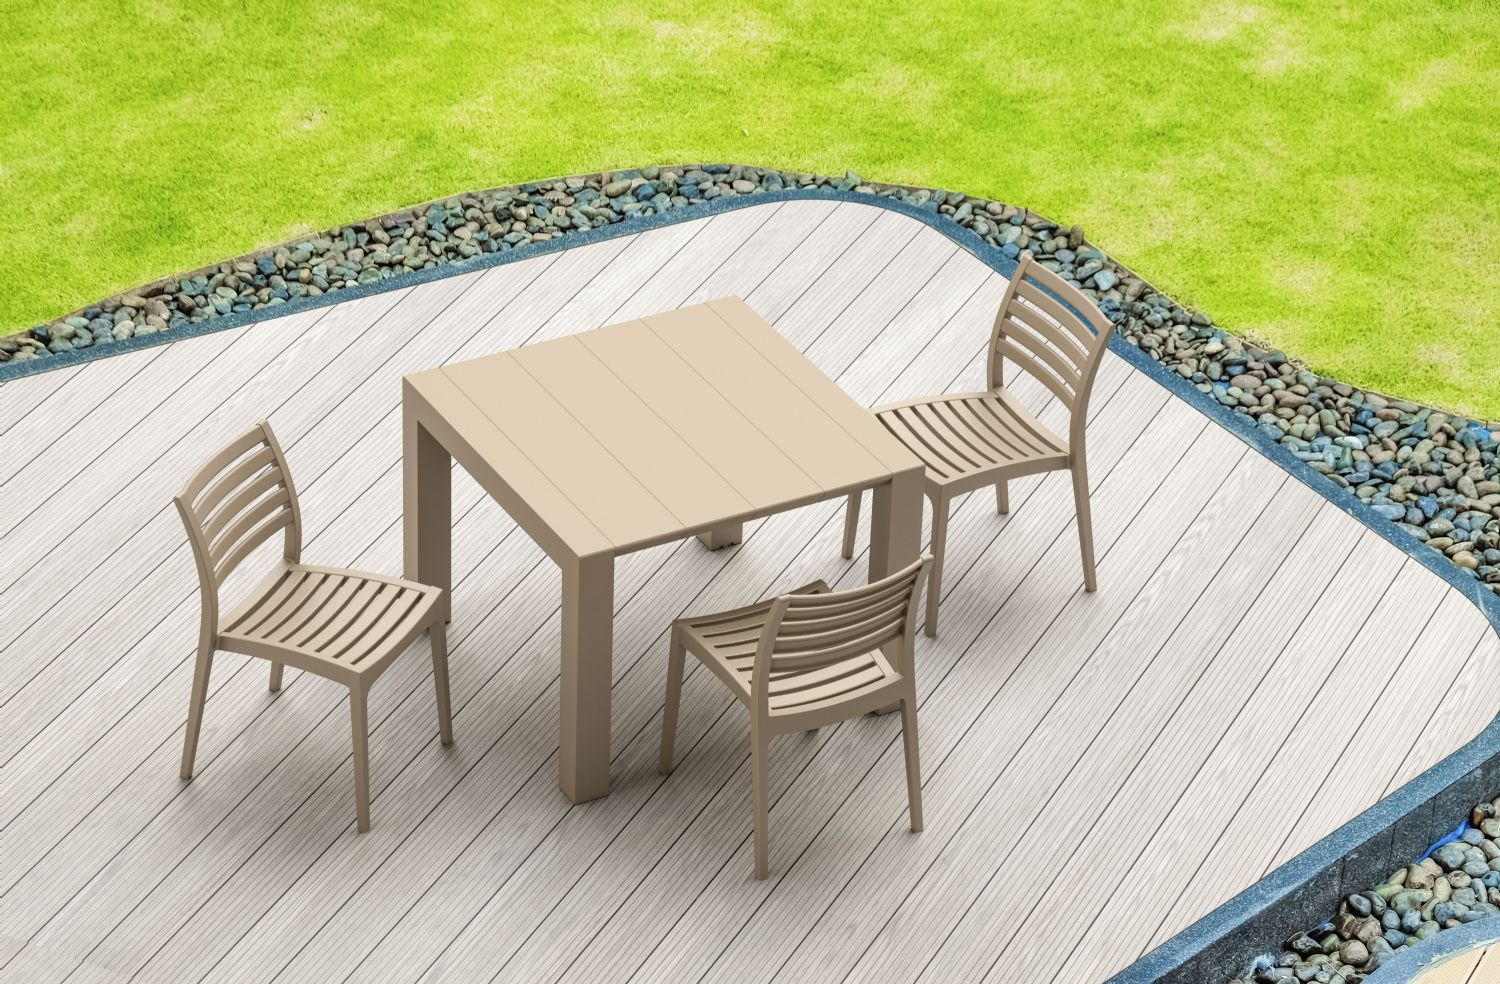 Ares Resin Outdoor Dining Chair Cafe Latte ISP009-TEA - 13